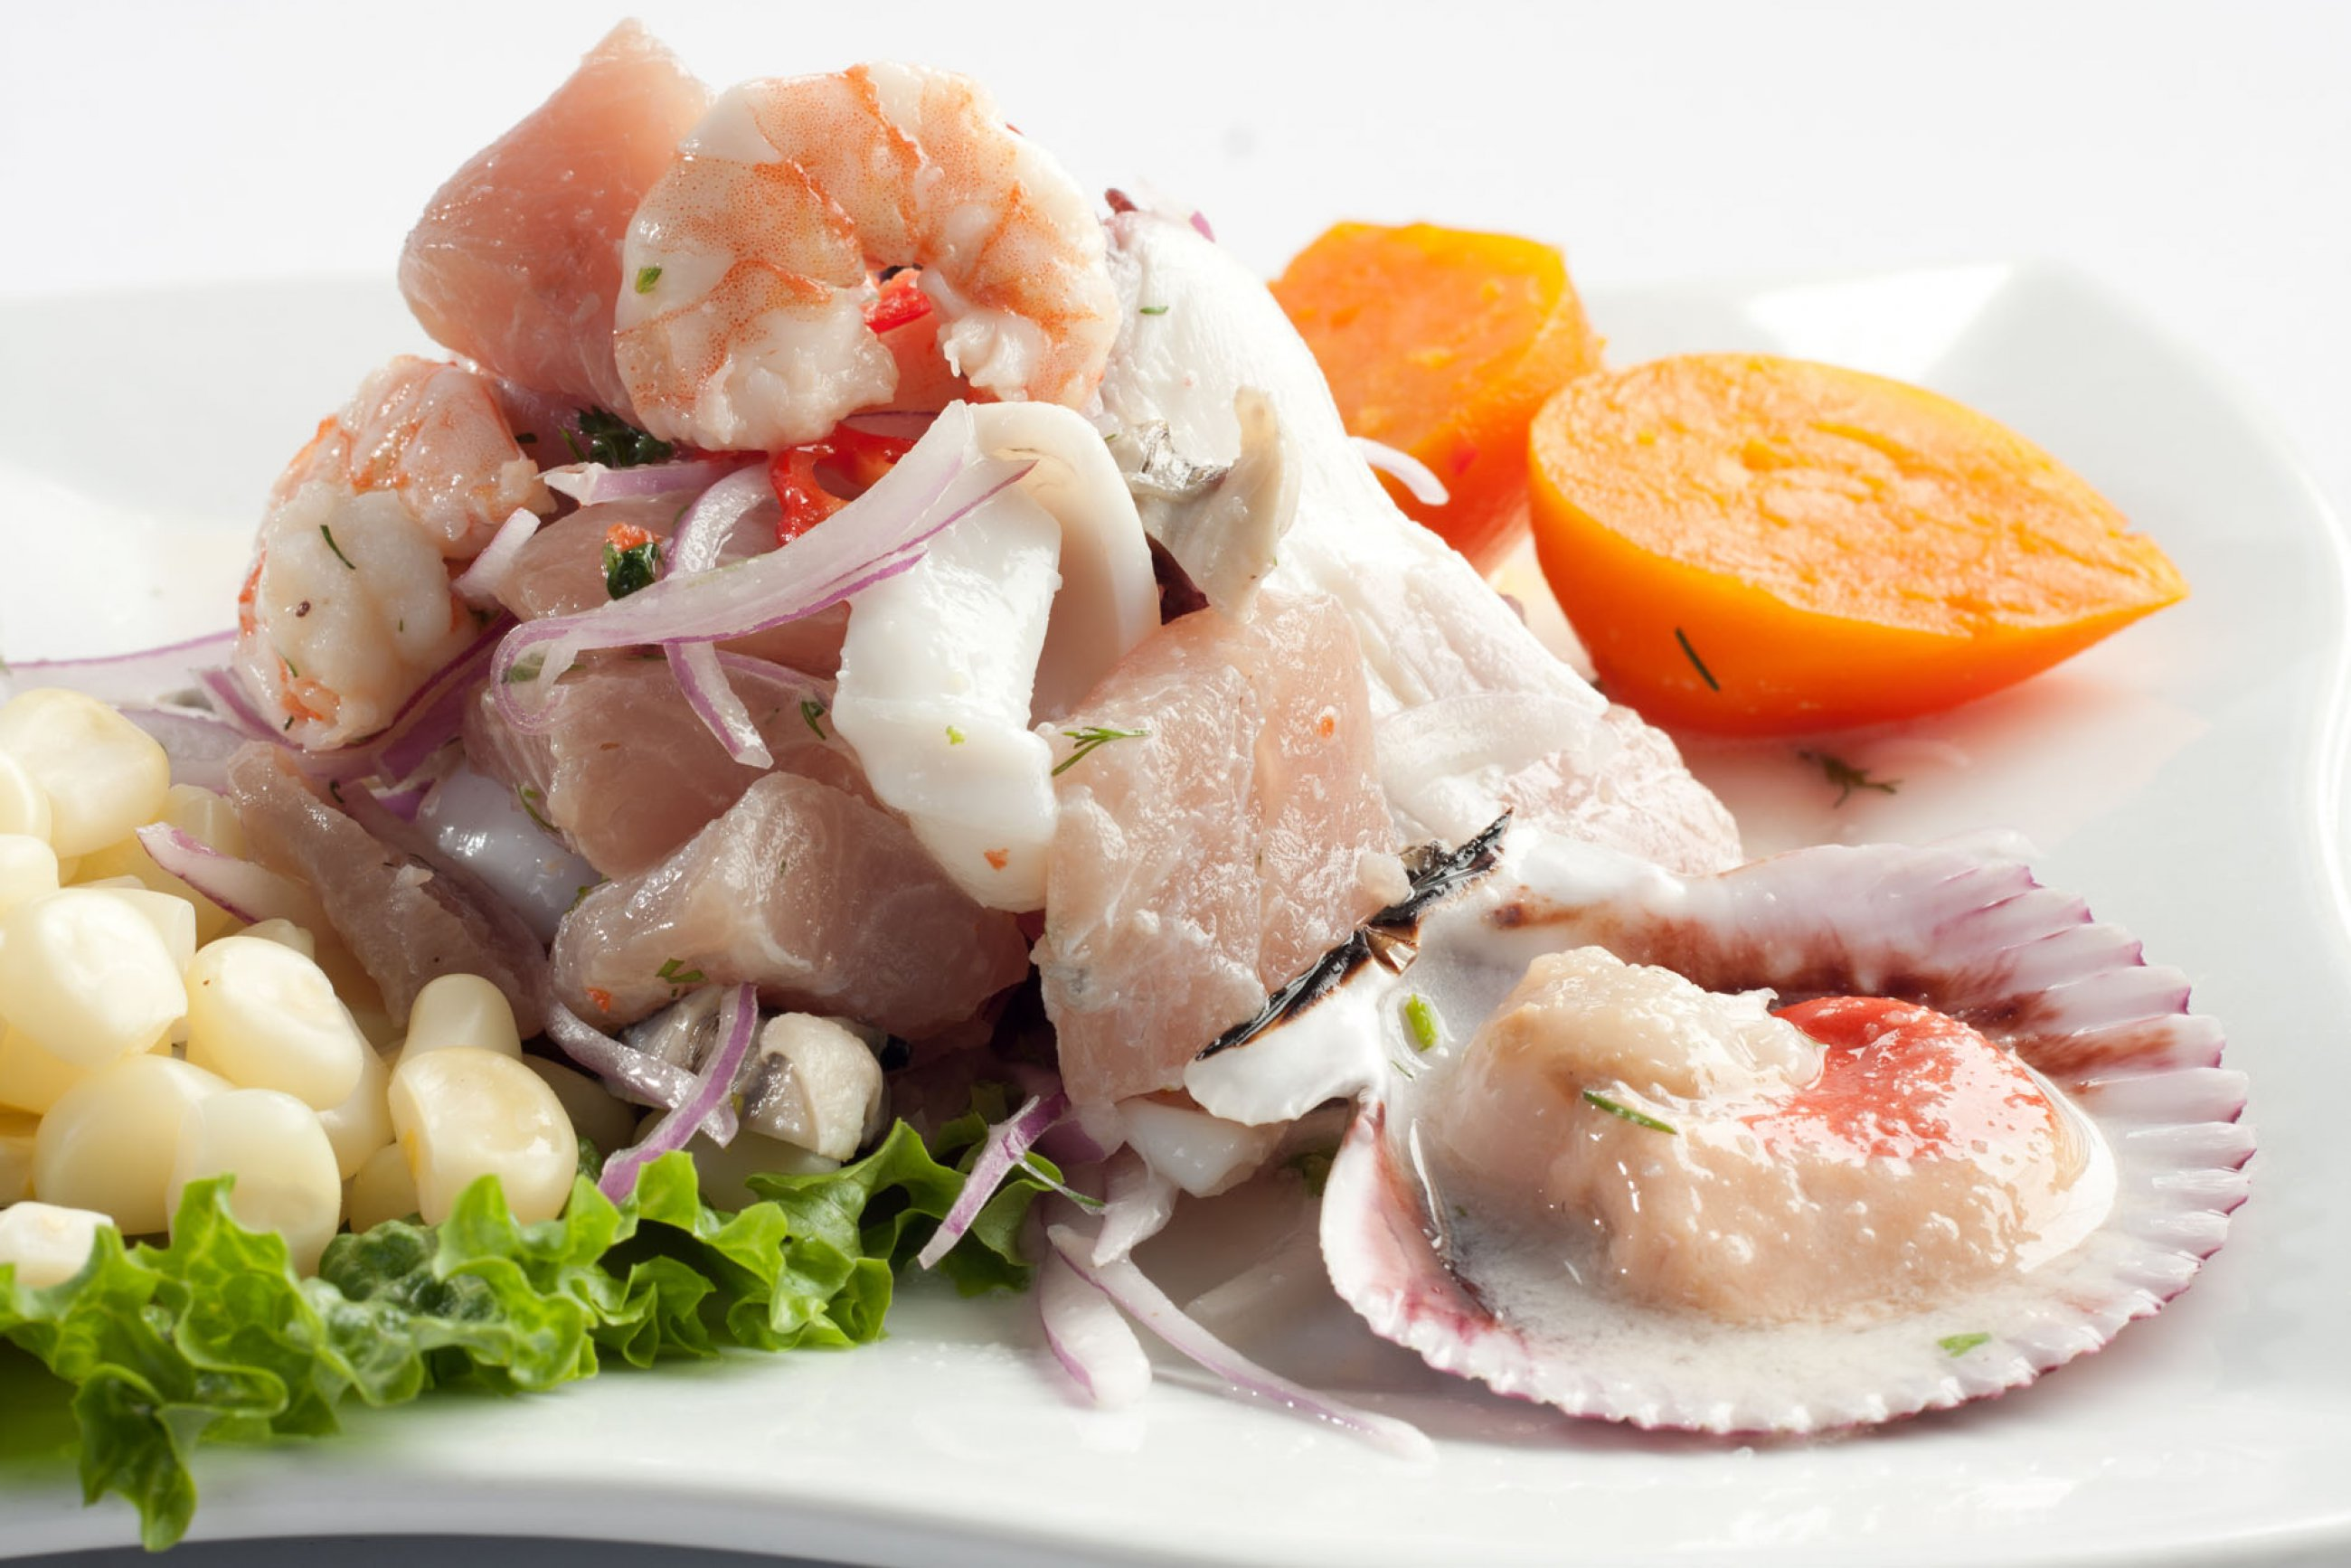 https://bubo.sk/uploads/galleries/5014/peru-ceviche.jpg